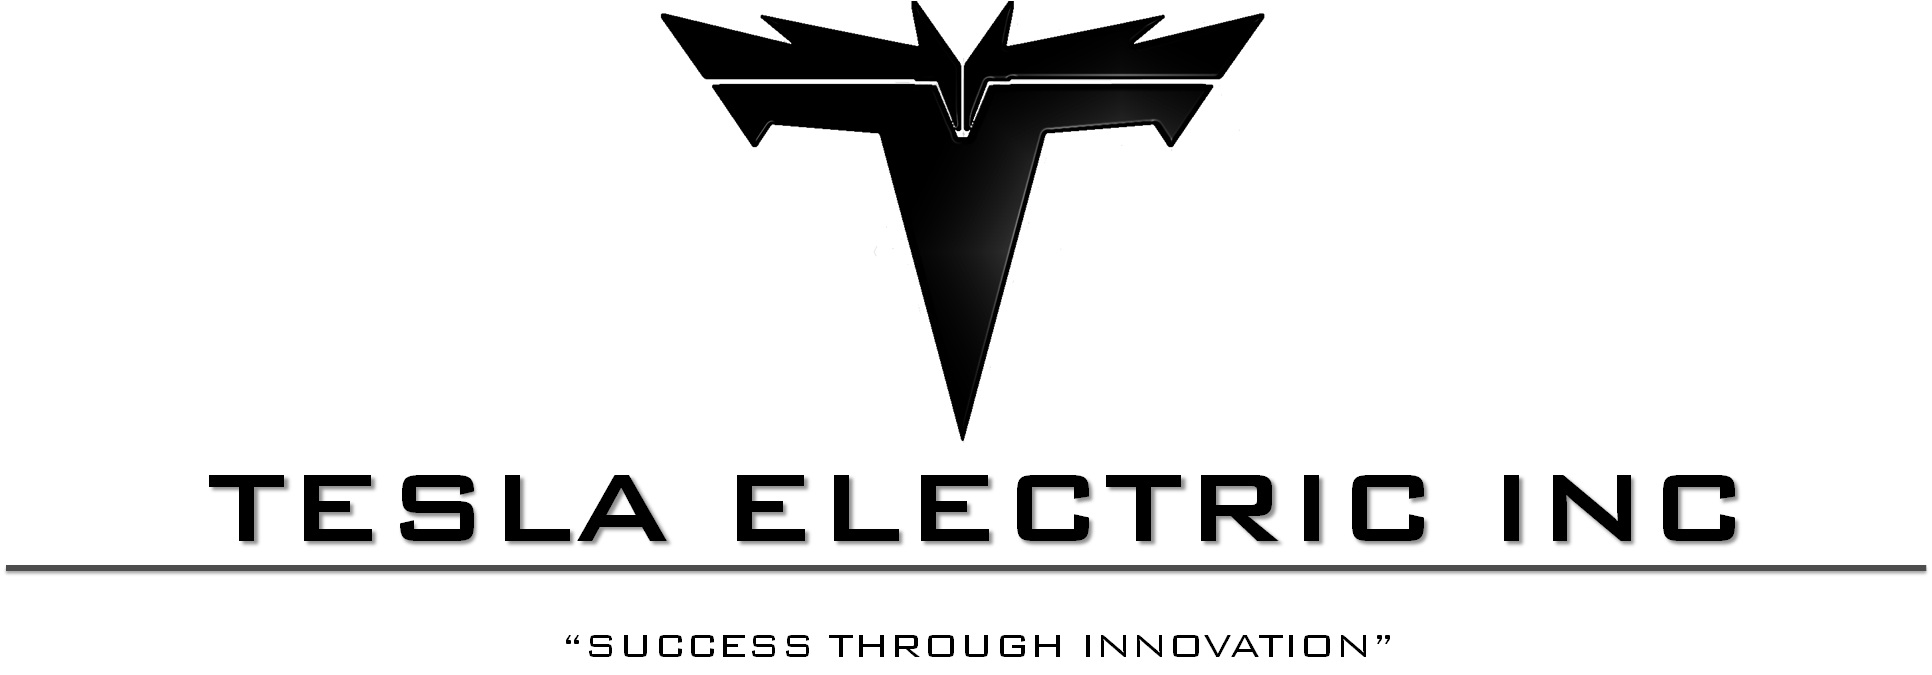 electricidad inhalambrica